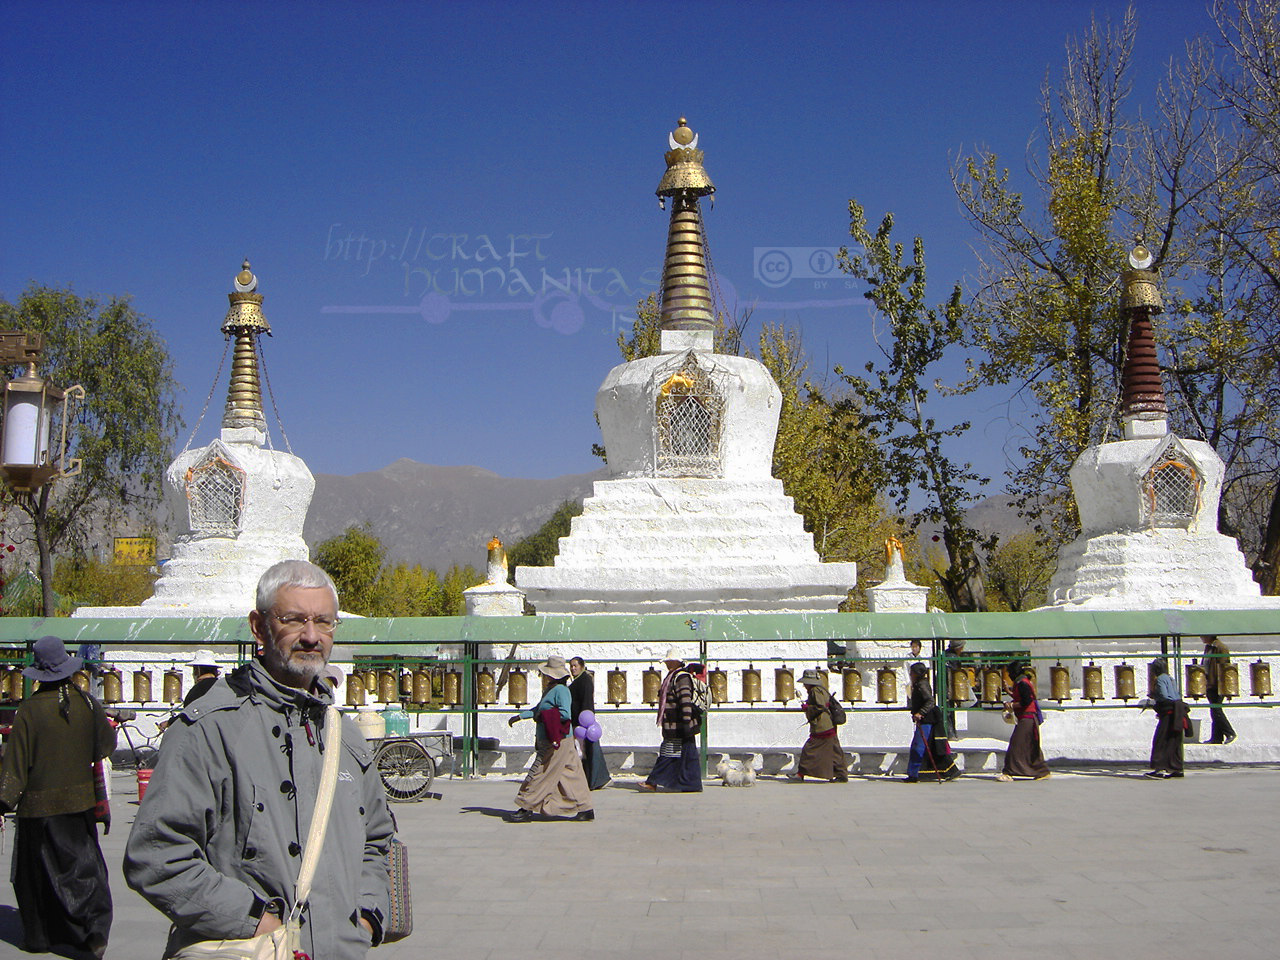 A very old photo: Fran in Lhasa on October 2007. Shot by my brother, Juan Luis Ayllón.